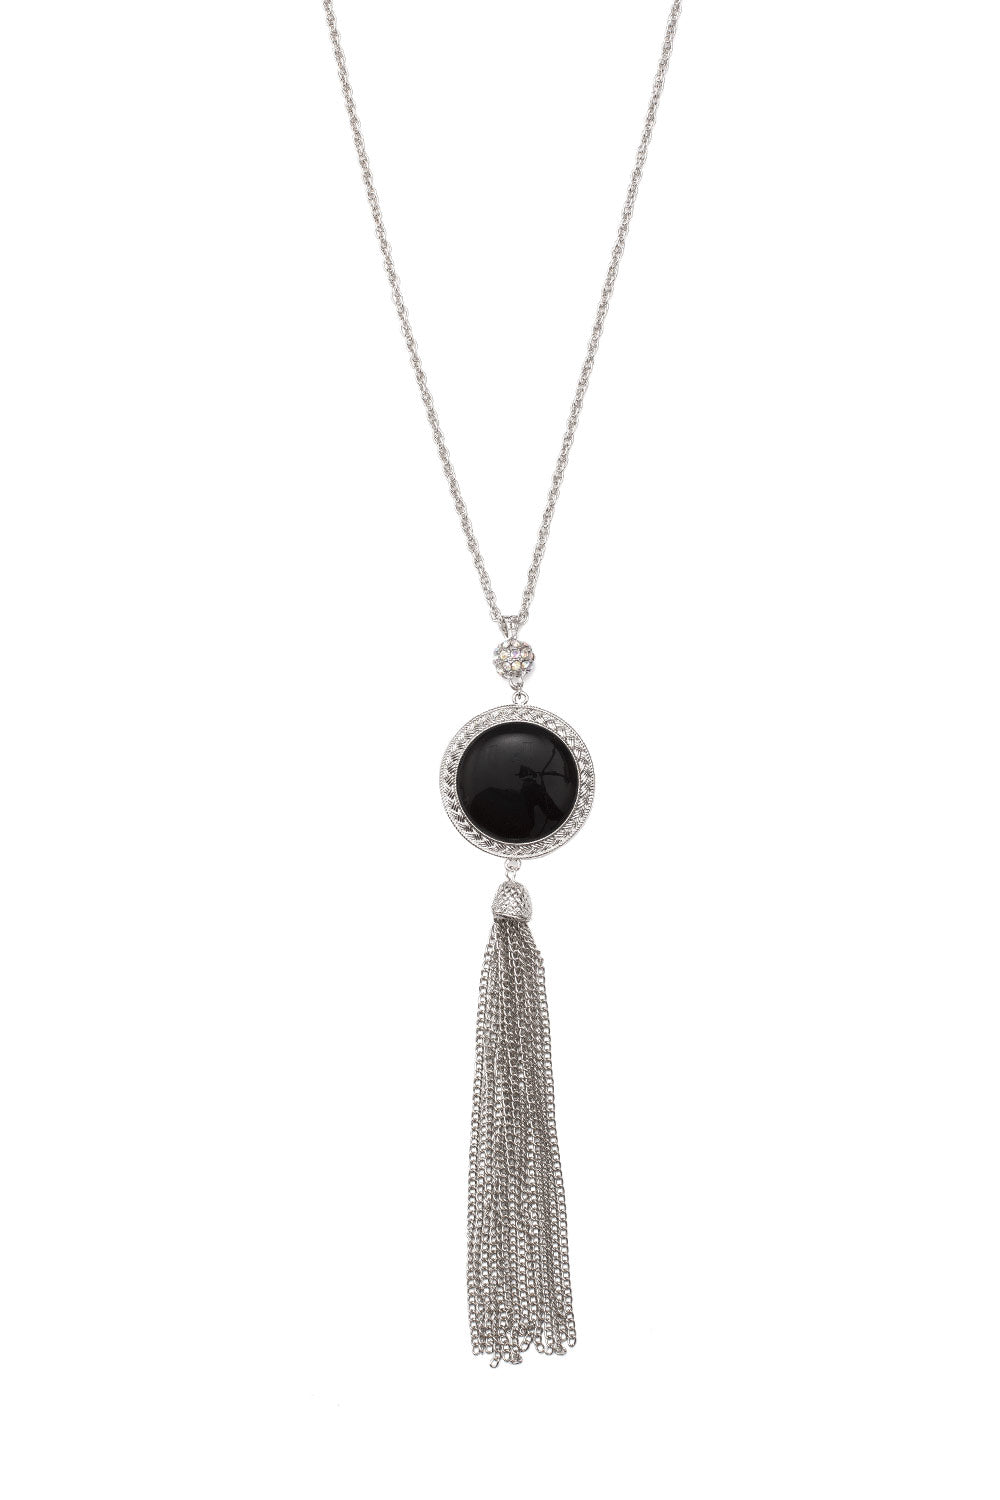 Type 4 Onyx Orb Necklace